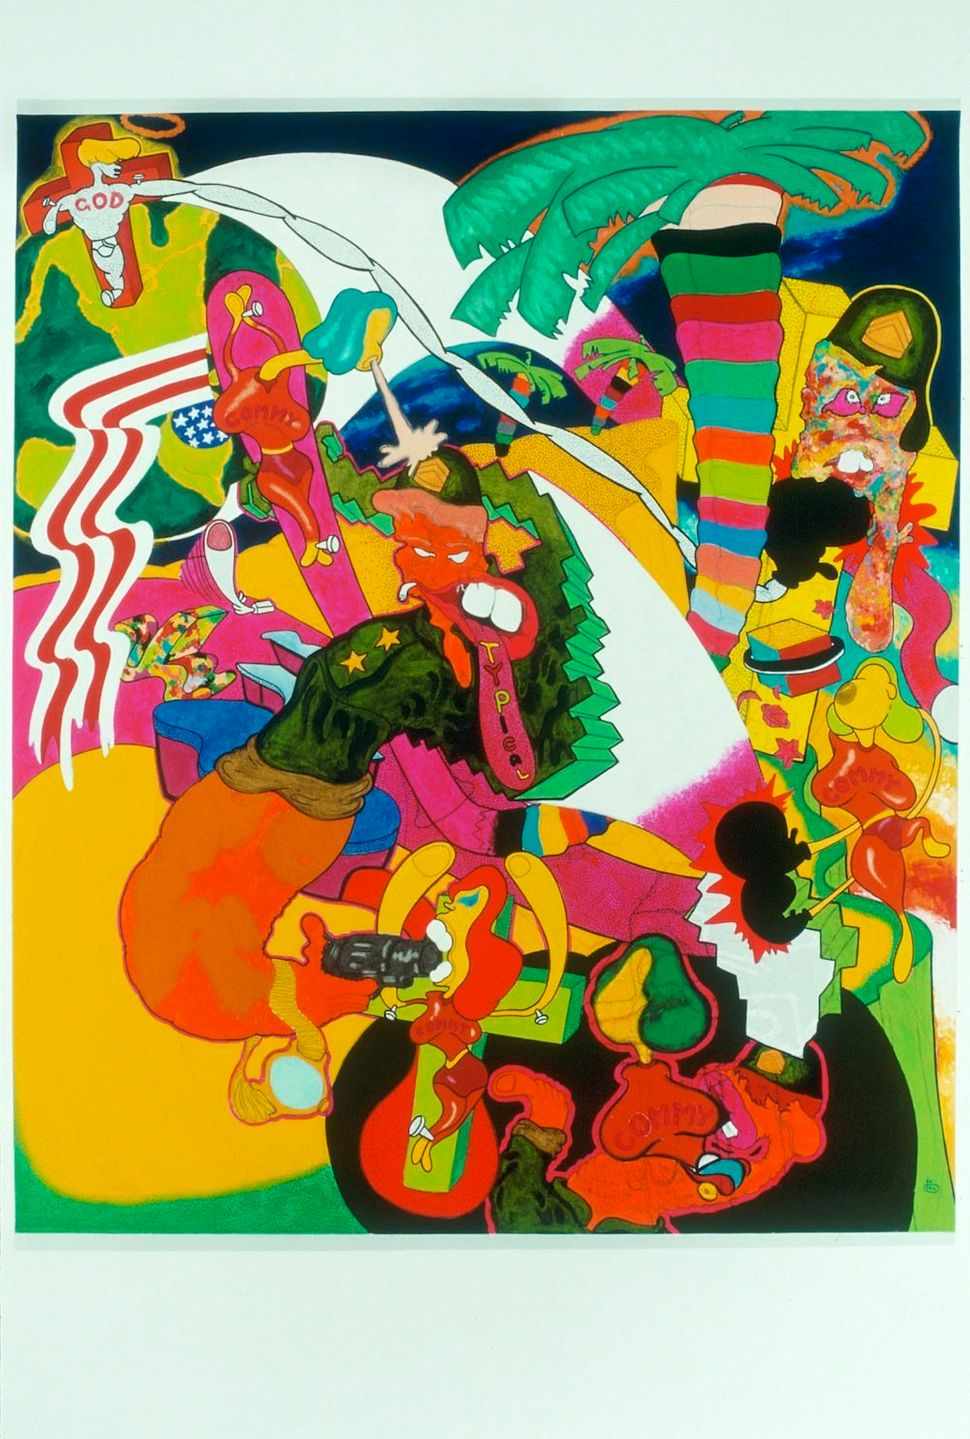 Peter Saul, Vietnam, 1966. © The artist. Collection Sally and Peter Saul.